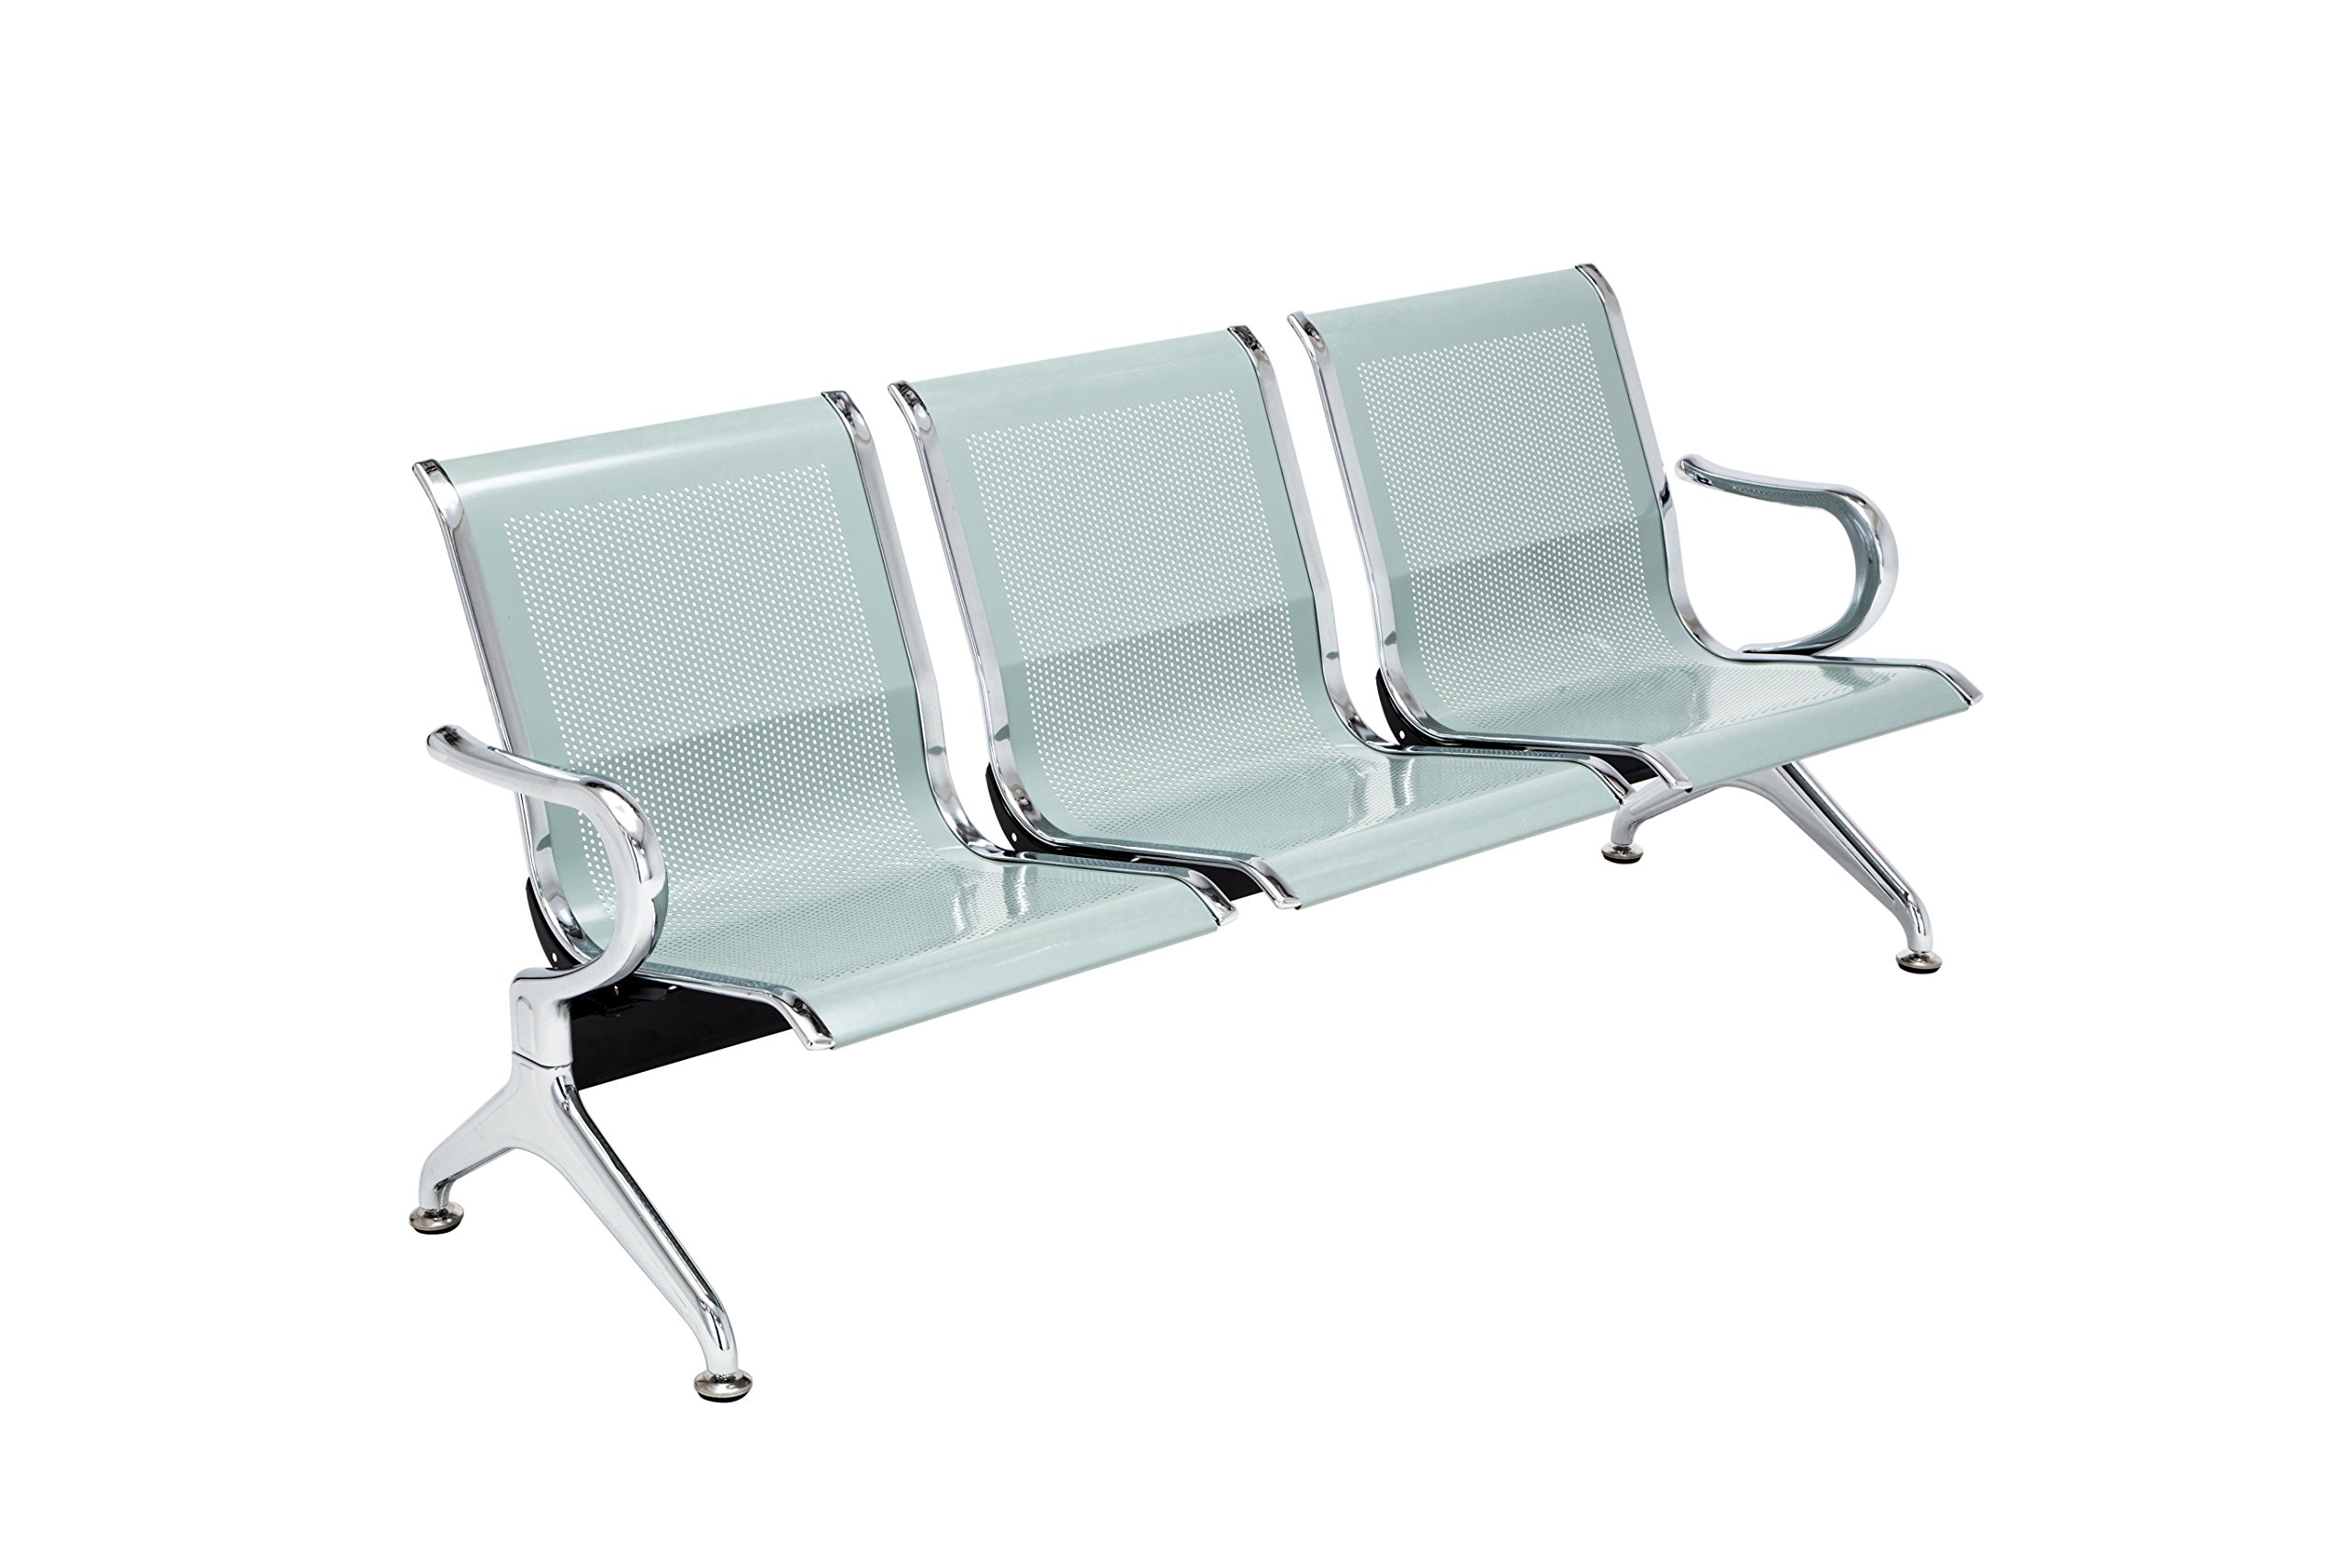 walsport Airport Office Reception Waiting Chair 3-seat Bench Guest Chair Salon Garden Barbershop Hospital Waiting Room Chairs